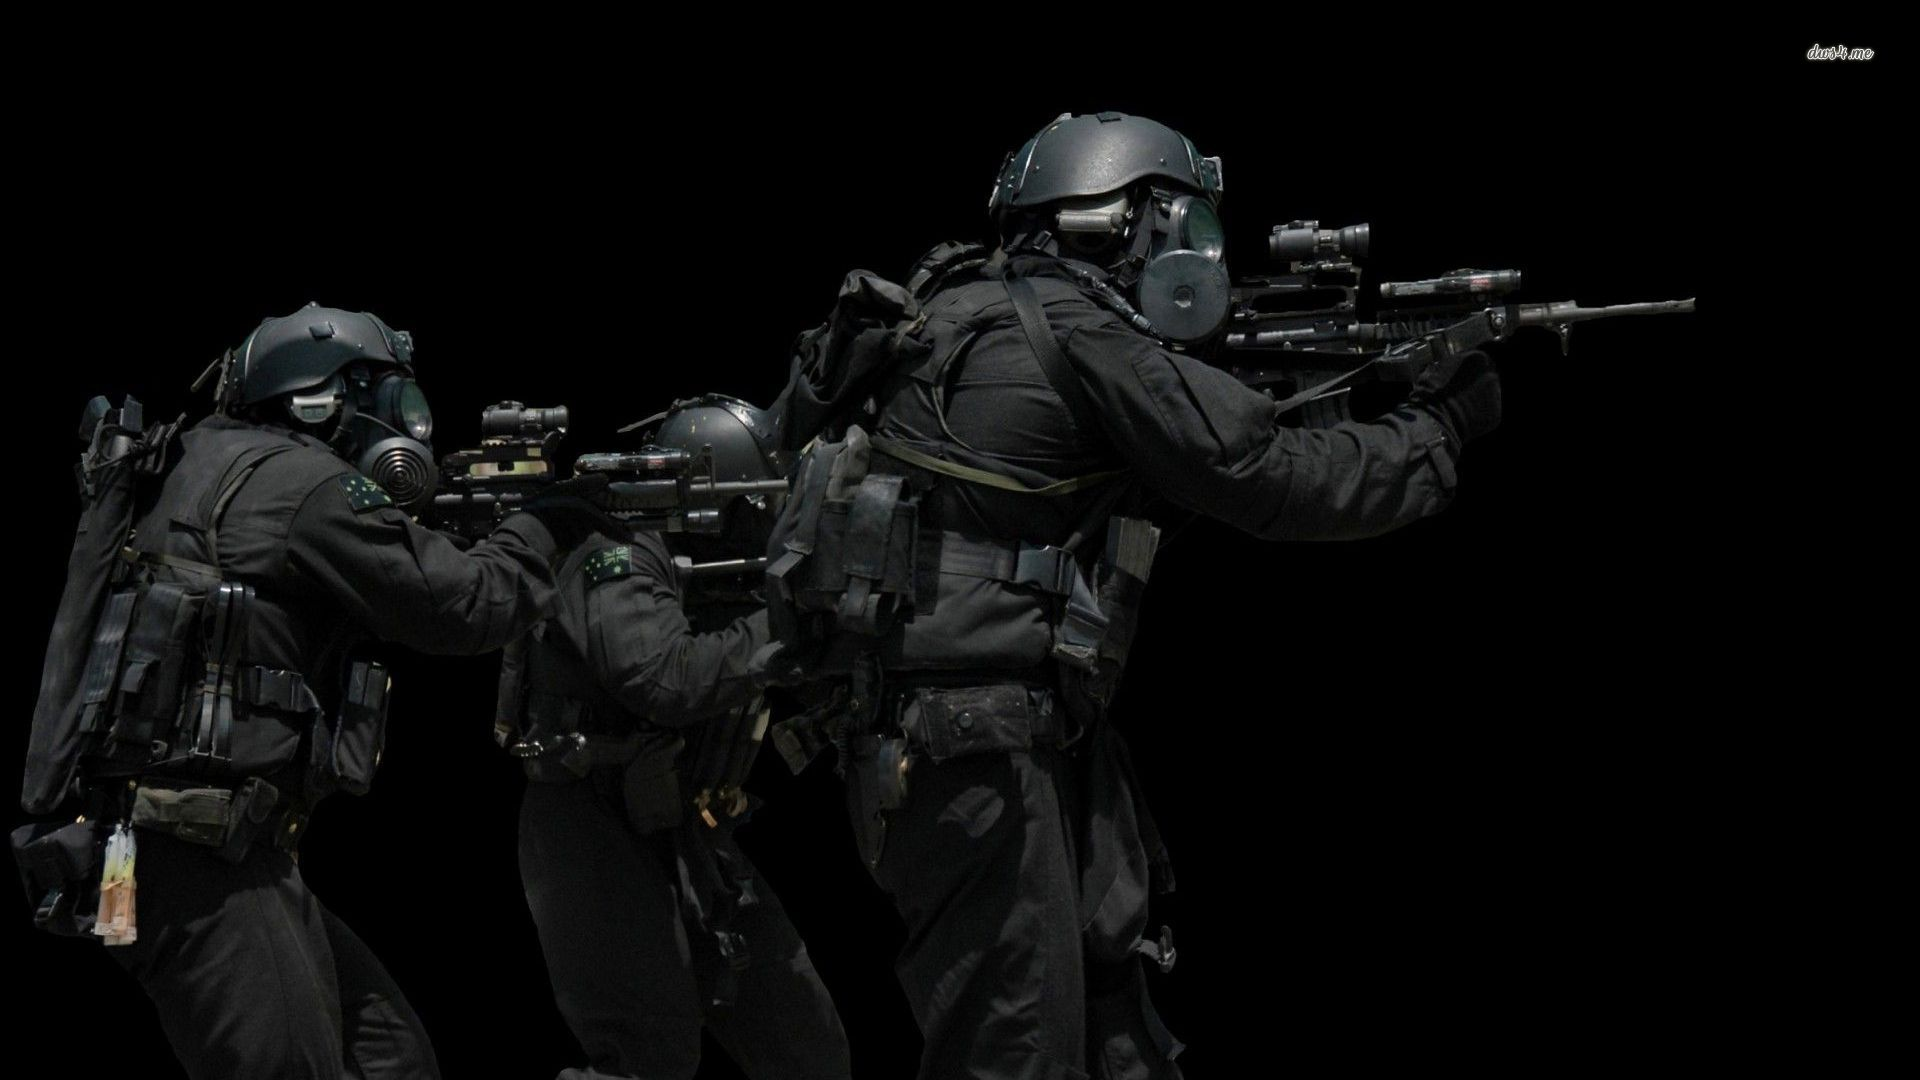 Swat Soldiers wallpapers HD   399269 1920x1080